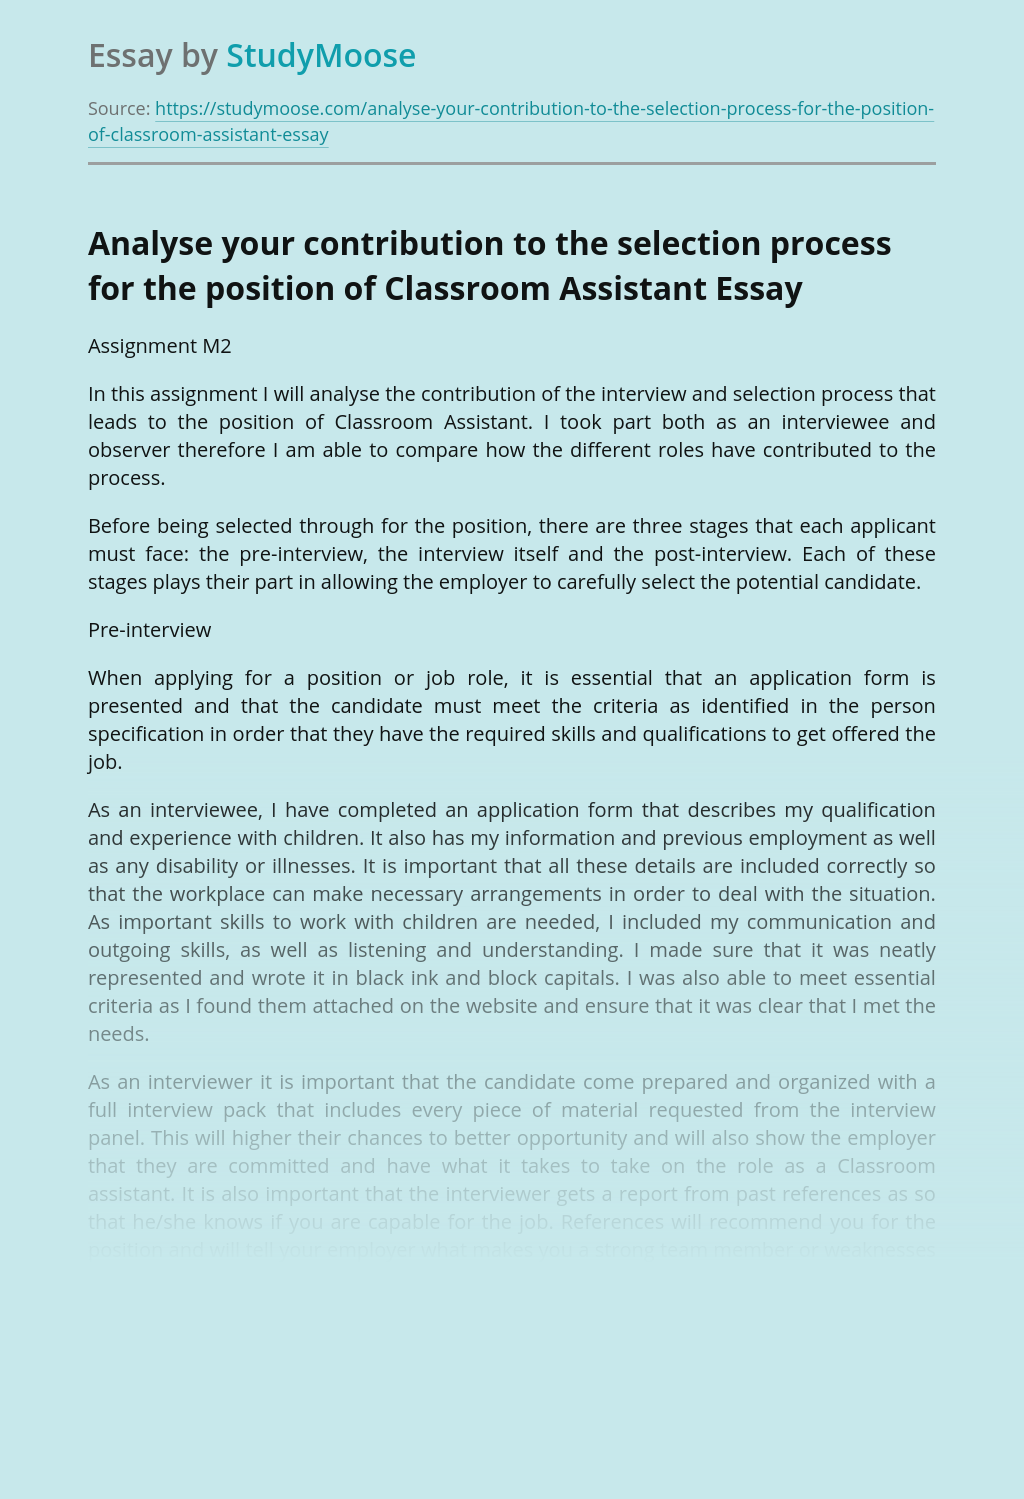 Analyse your contribution to the selection process for the position of Classroom Assistant